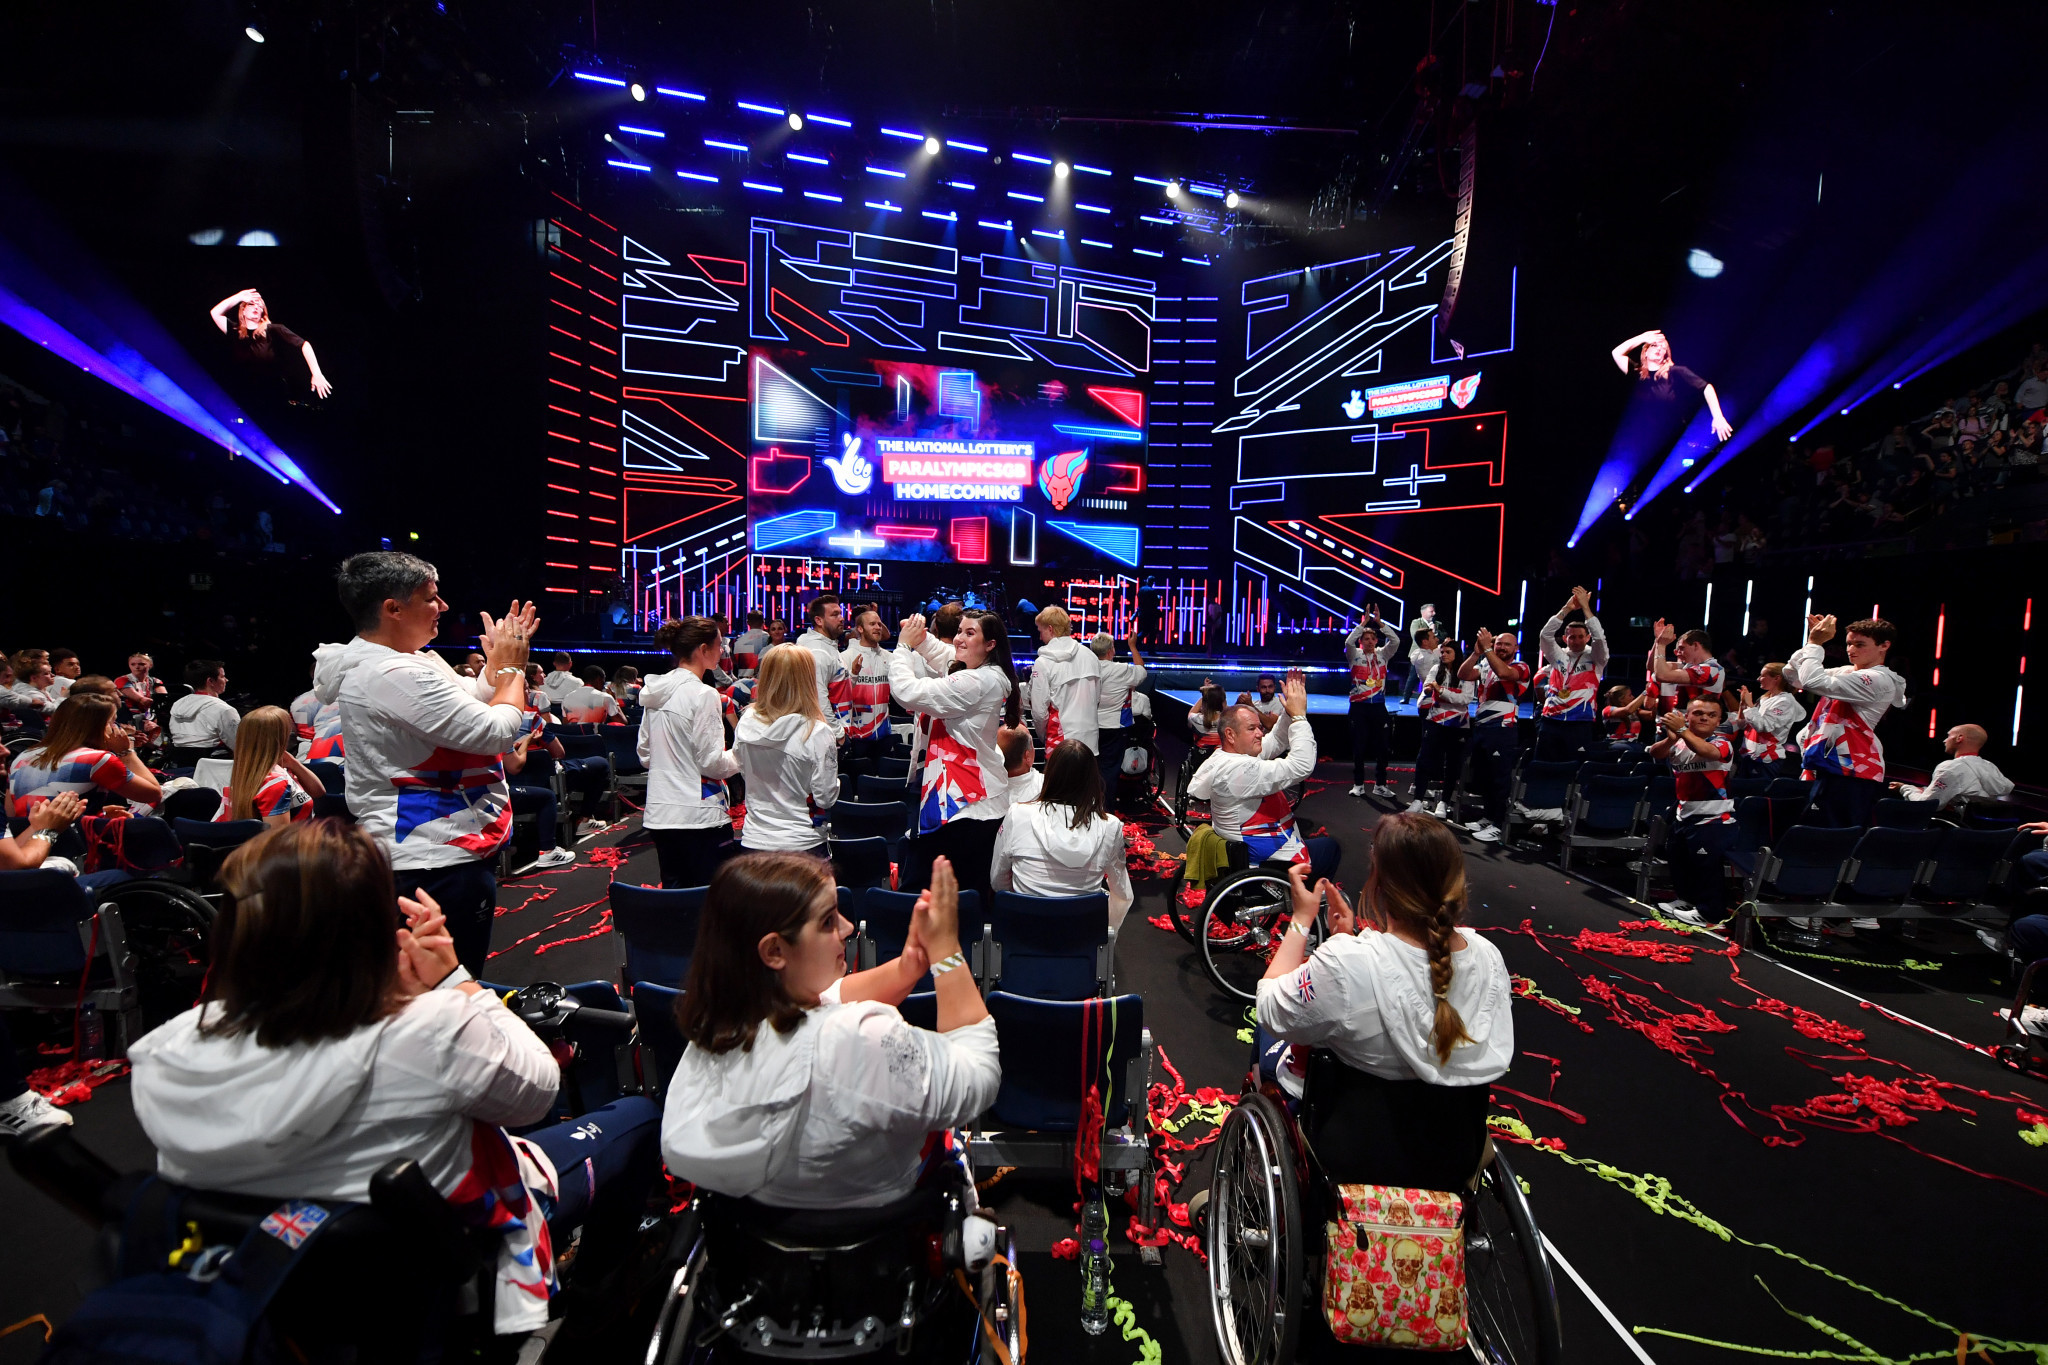 ParalympicsGB holds homecoming event to celebrate Tokyo 2020 team